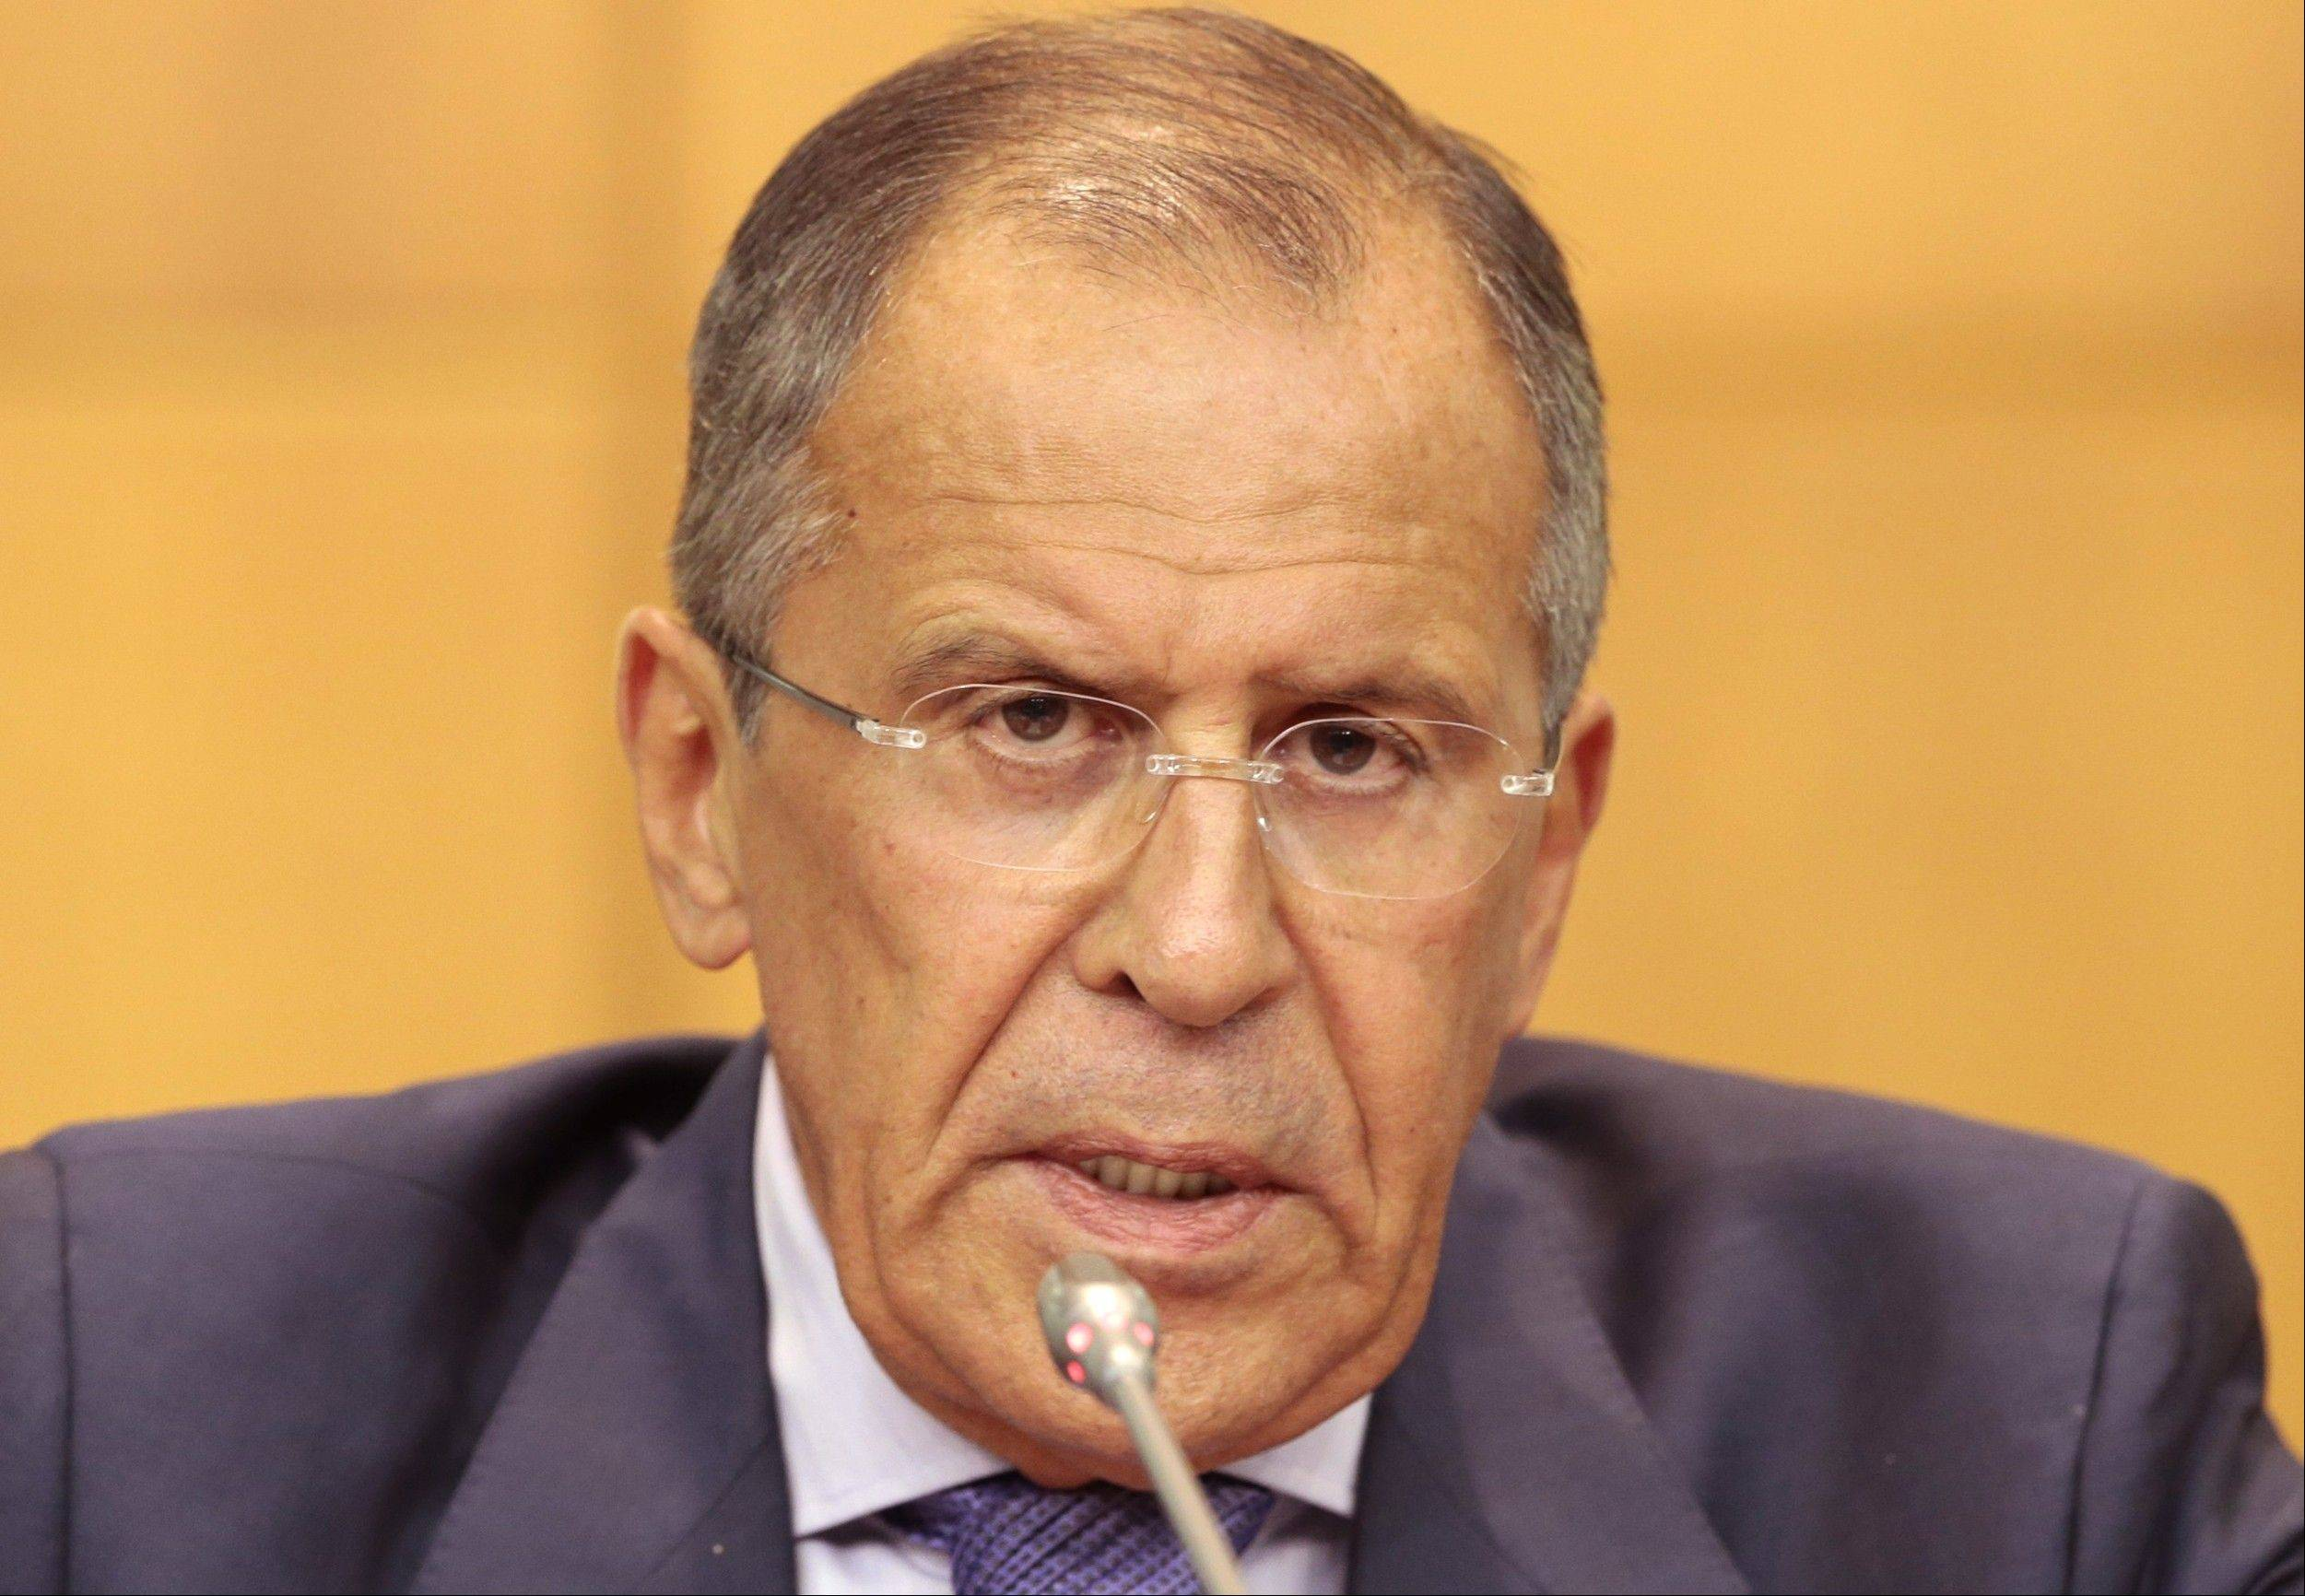 Russian Foreign Minister Sergey Lavrov said Monday that Western nations calling for military action against Syria have no proof that the Syrian government is behind the alleged chemical weapons attack.